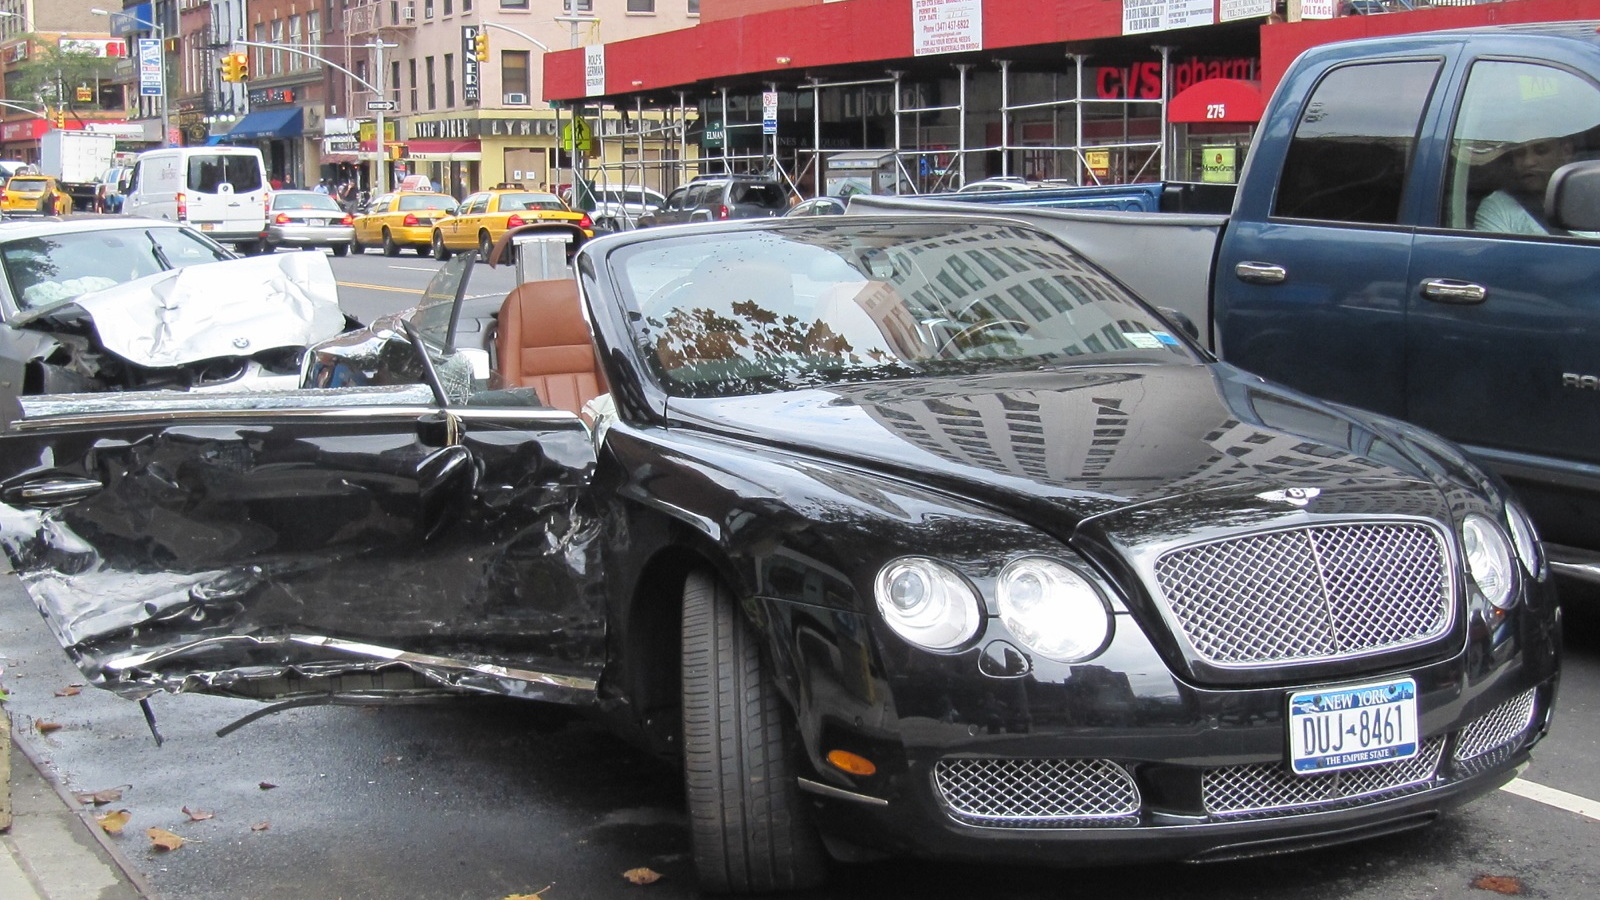 Wrecked Bentley Continental GTC parked at the side of the street in New York City